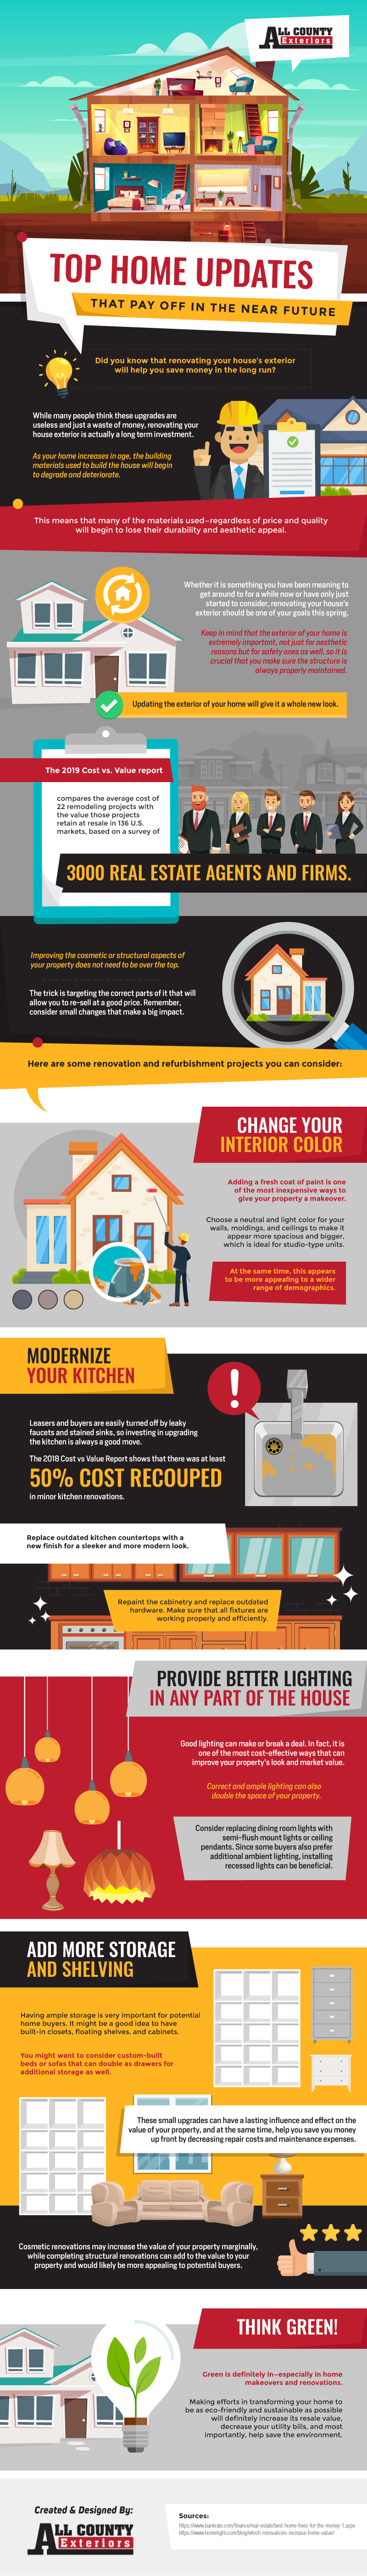 Top Home Updates That Pay Off In The Near Future Infographic